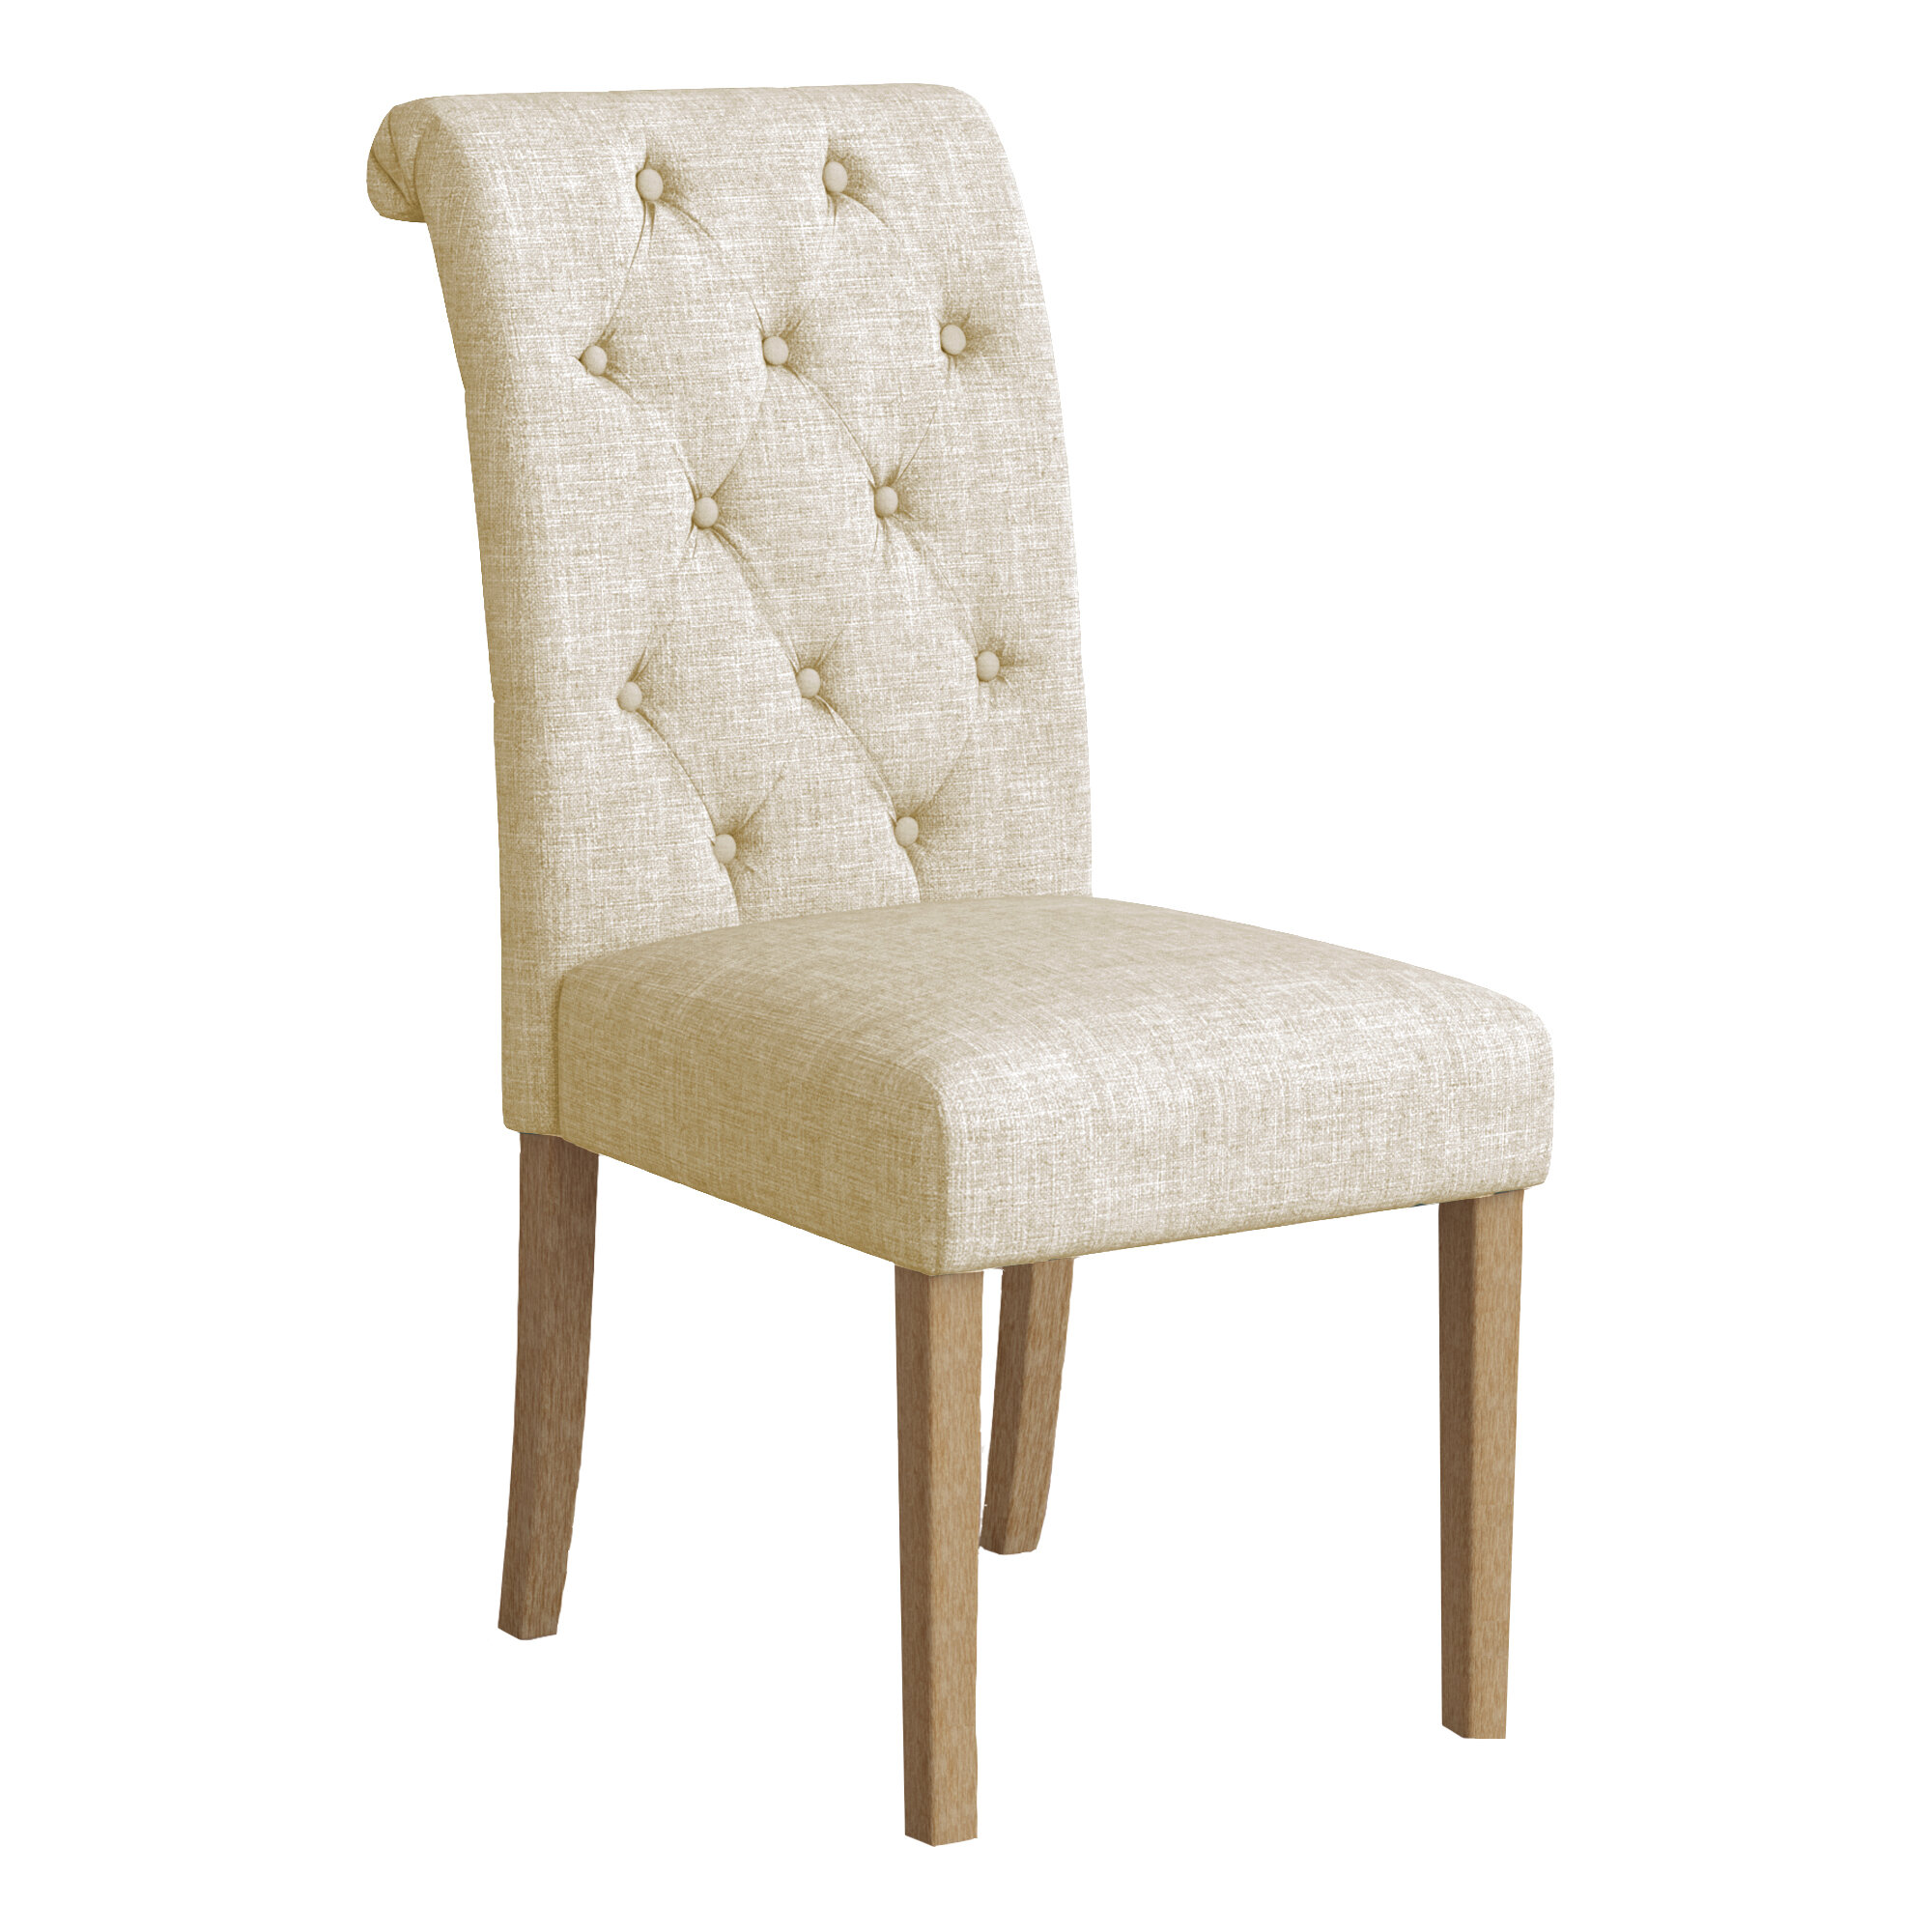 f084939ee5c9 Mistana Charlotte Upholstered Dining Chair & Reviews | Wayfair